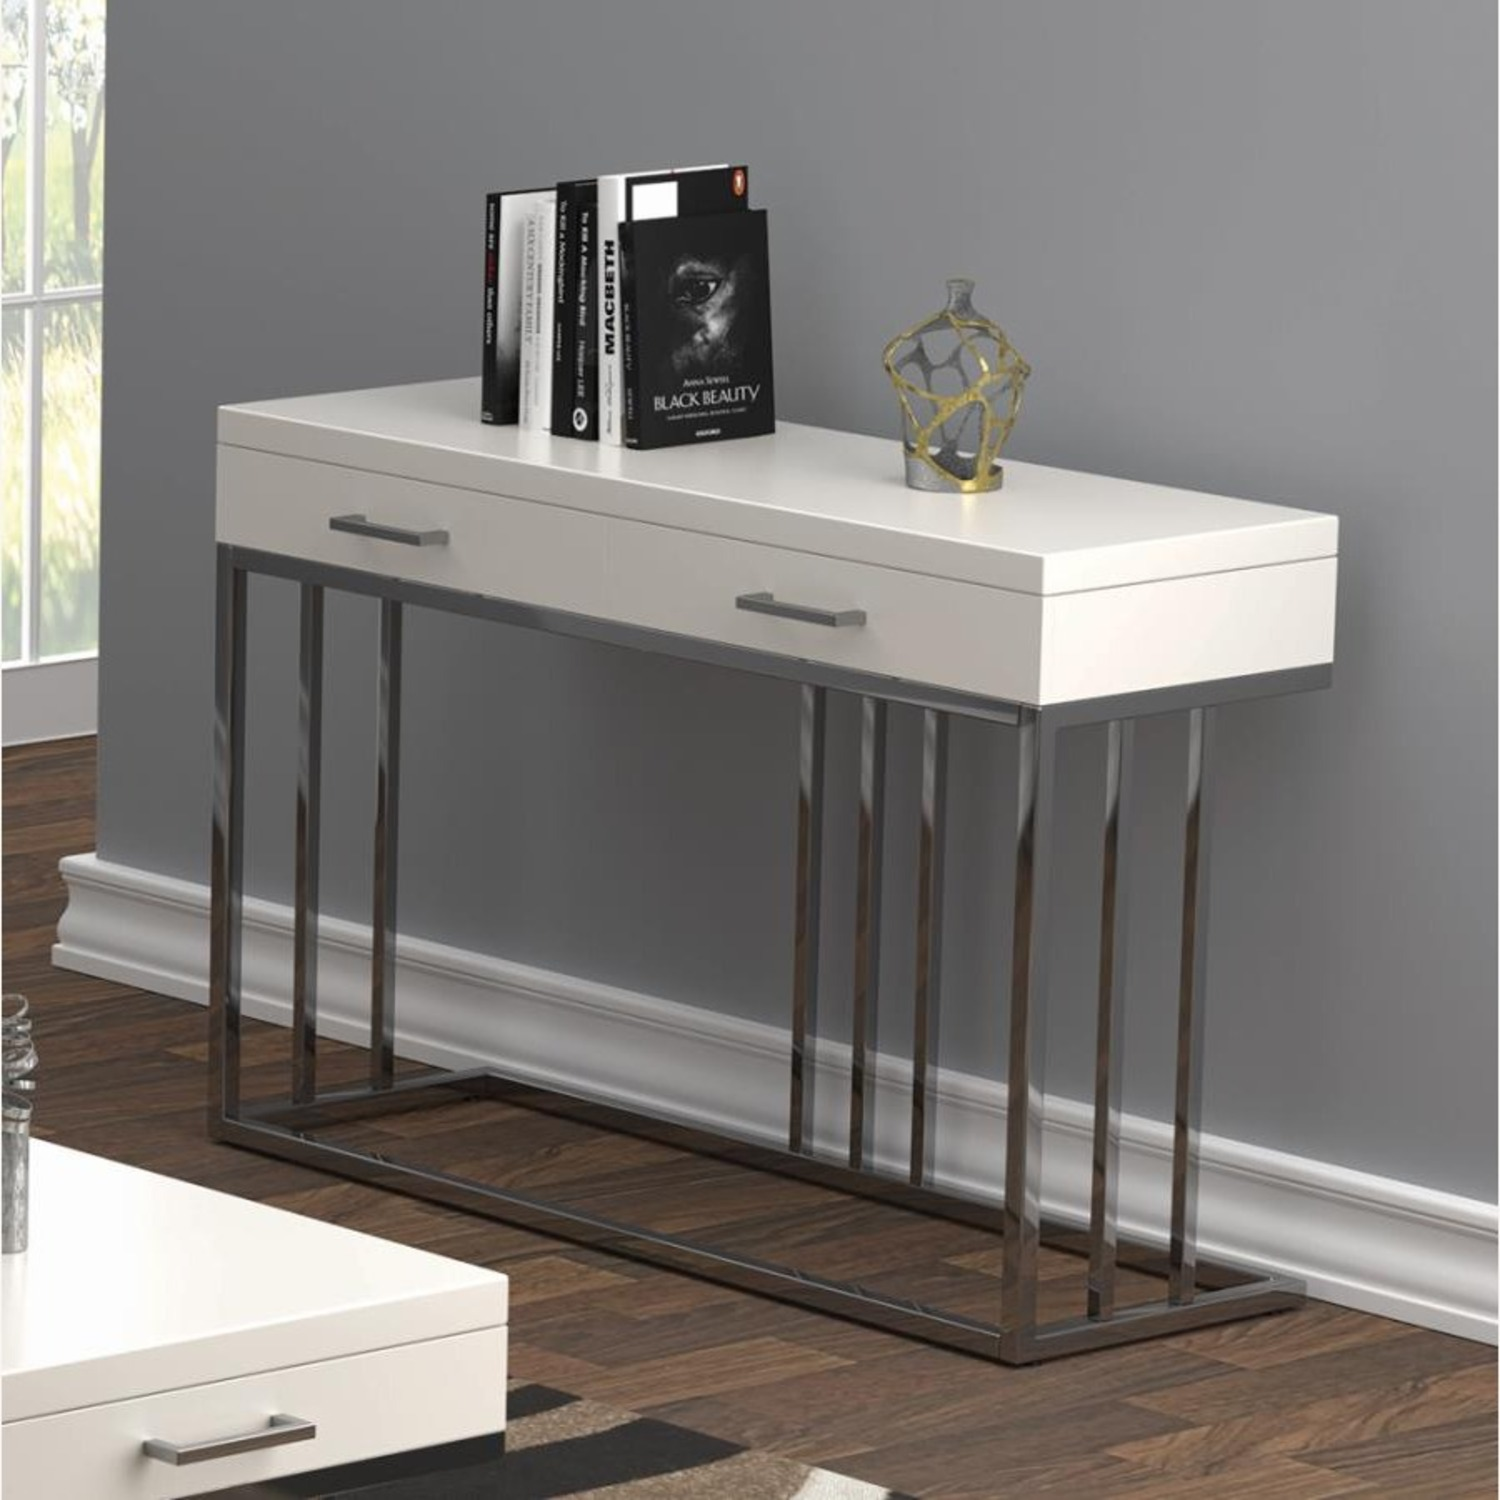 Sofa Table In Modern Linear Design - image-4